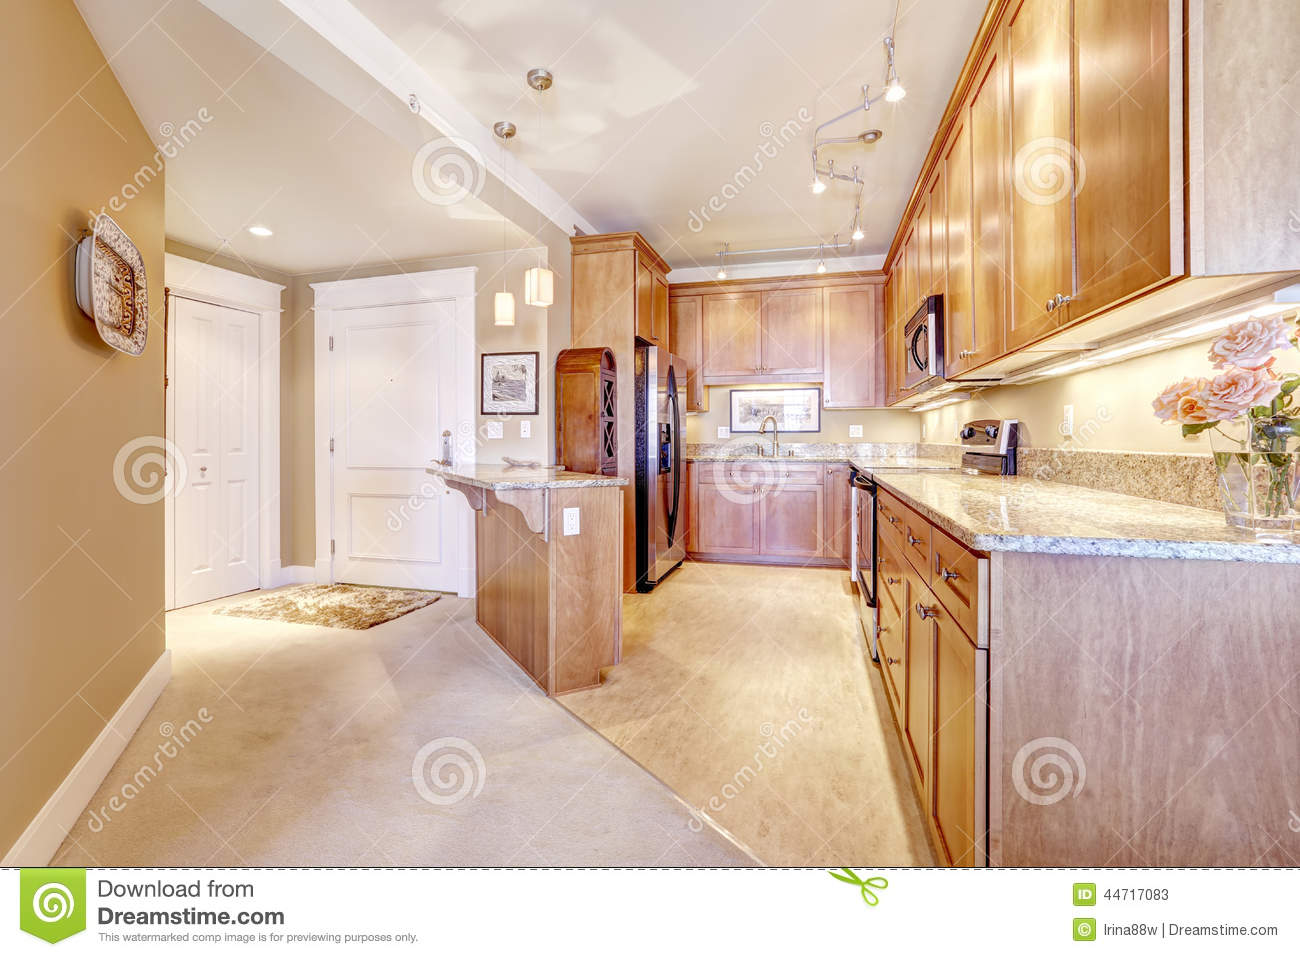 apartment interior. kitchen room with entrance hallway stock photo